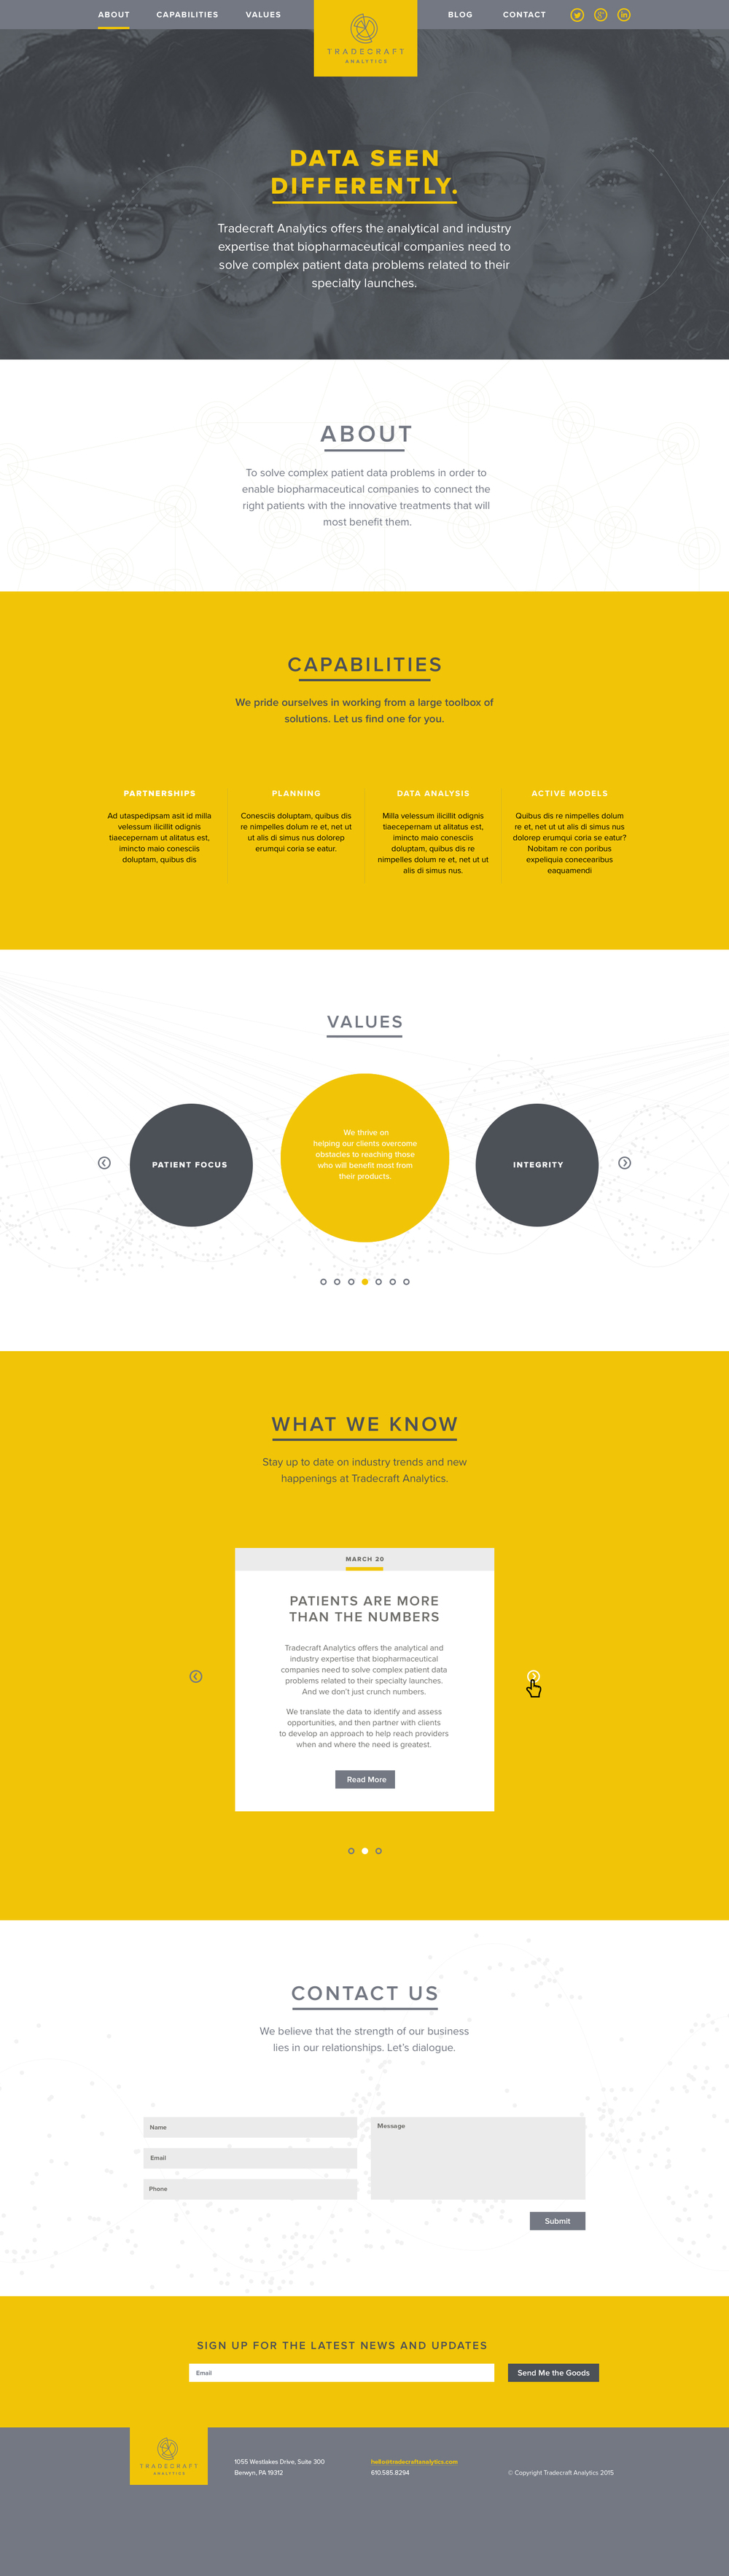 julierado-tradecraft-analytics-identity-website-flat.jpg